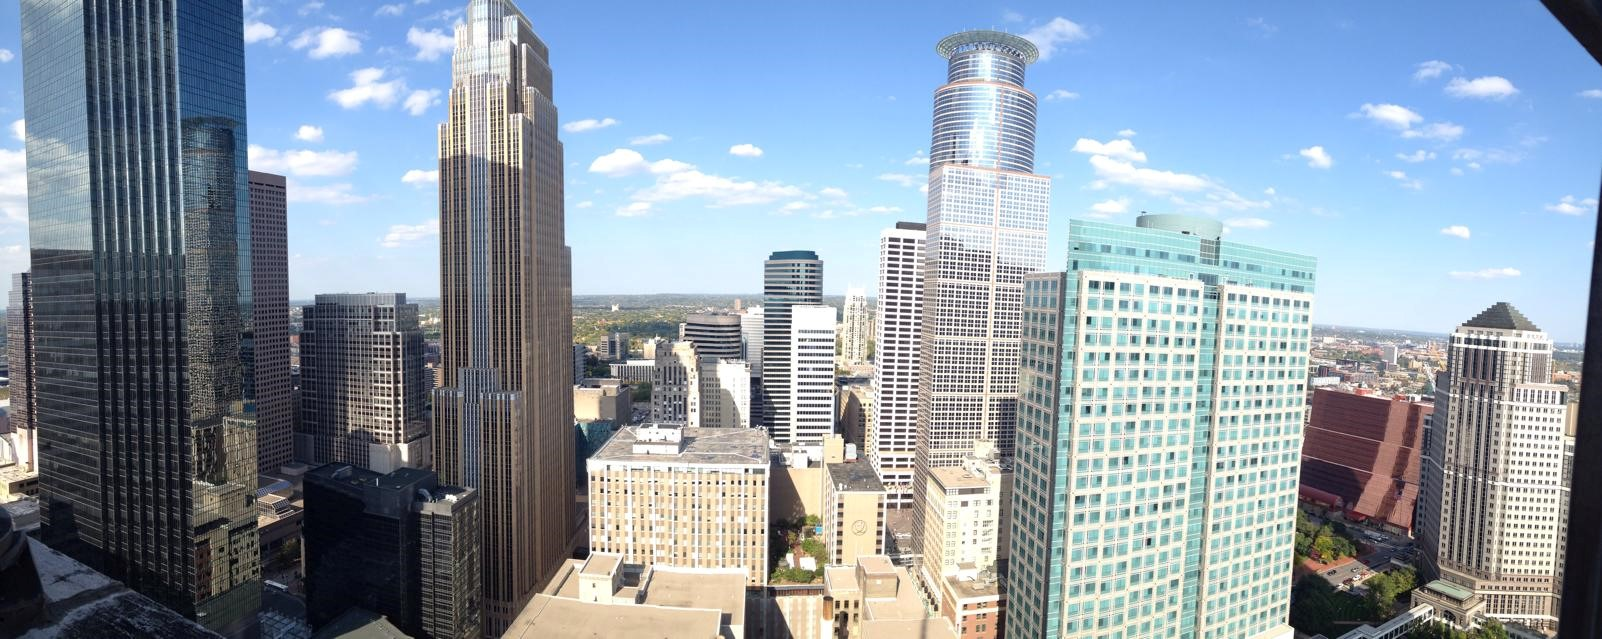 Foshay Tower Observation Deck Minneapolis Panorama